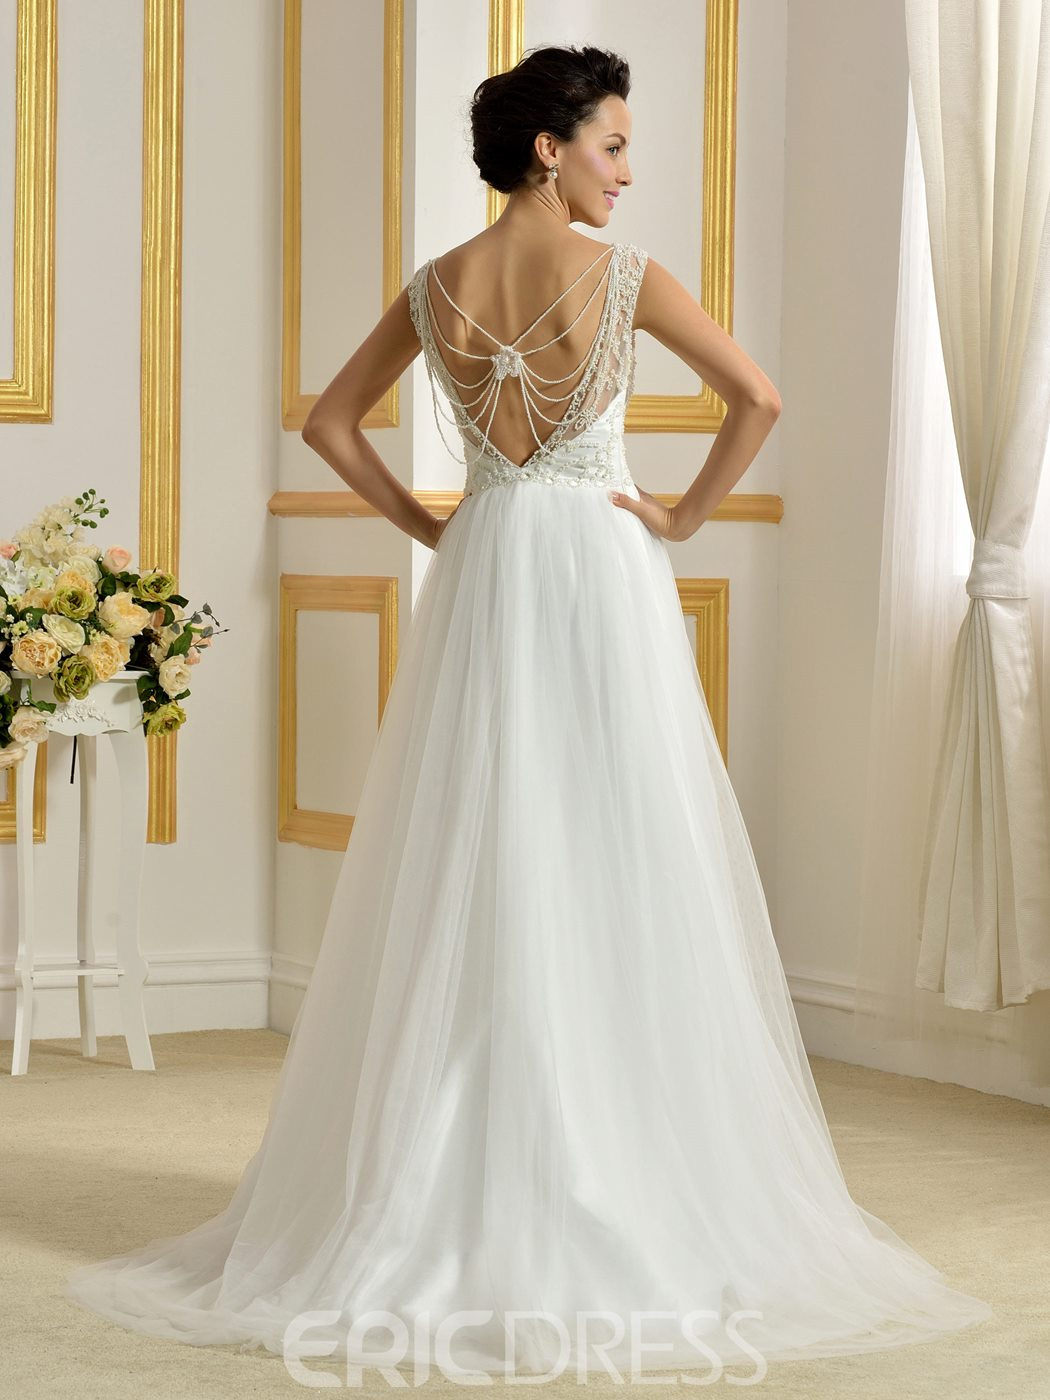 Ericdress Beautiful Scoop Backless A Line Wedding Dress